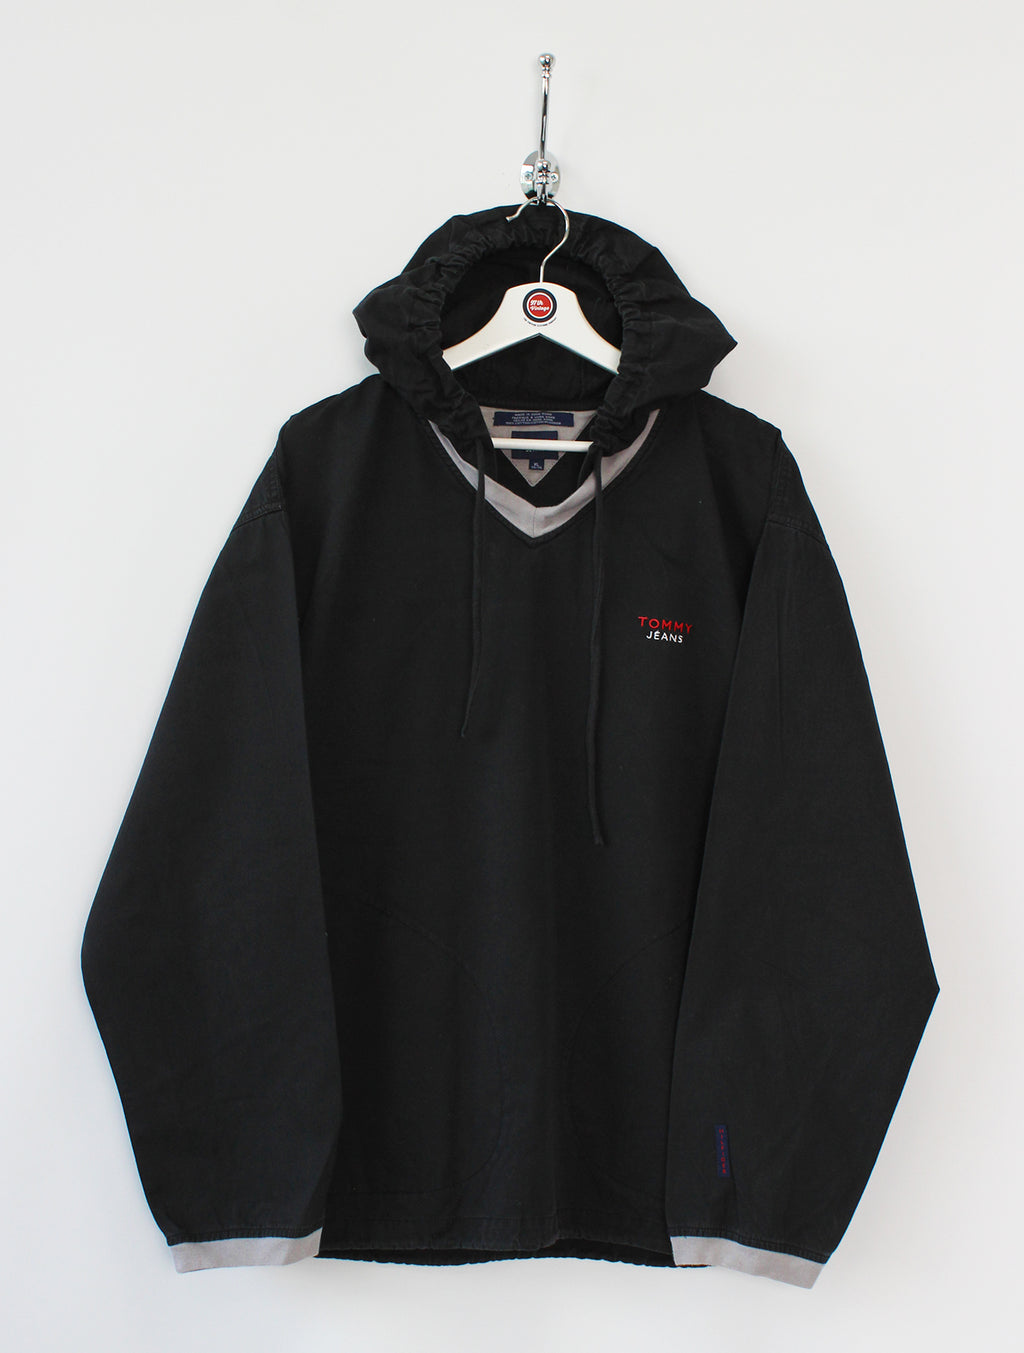 Tommy Hilfiger Pullover (XL)